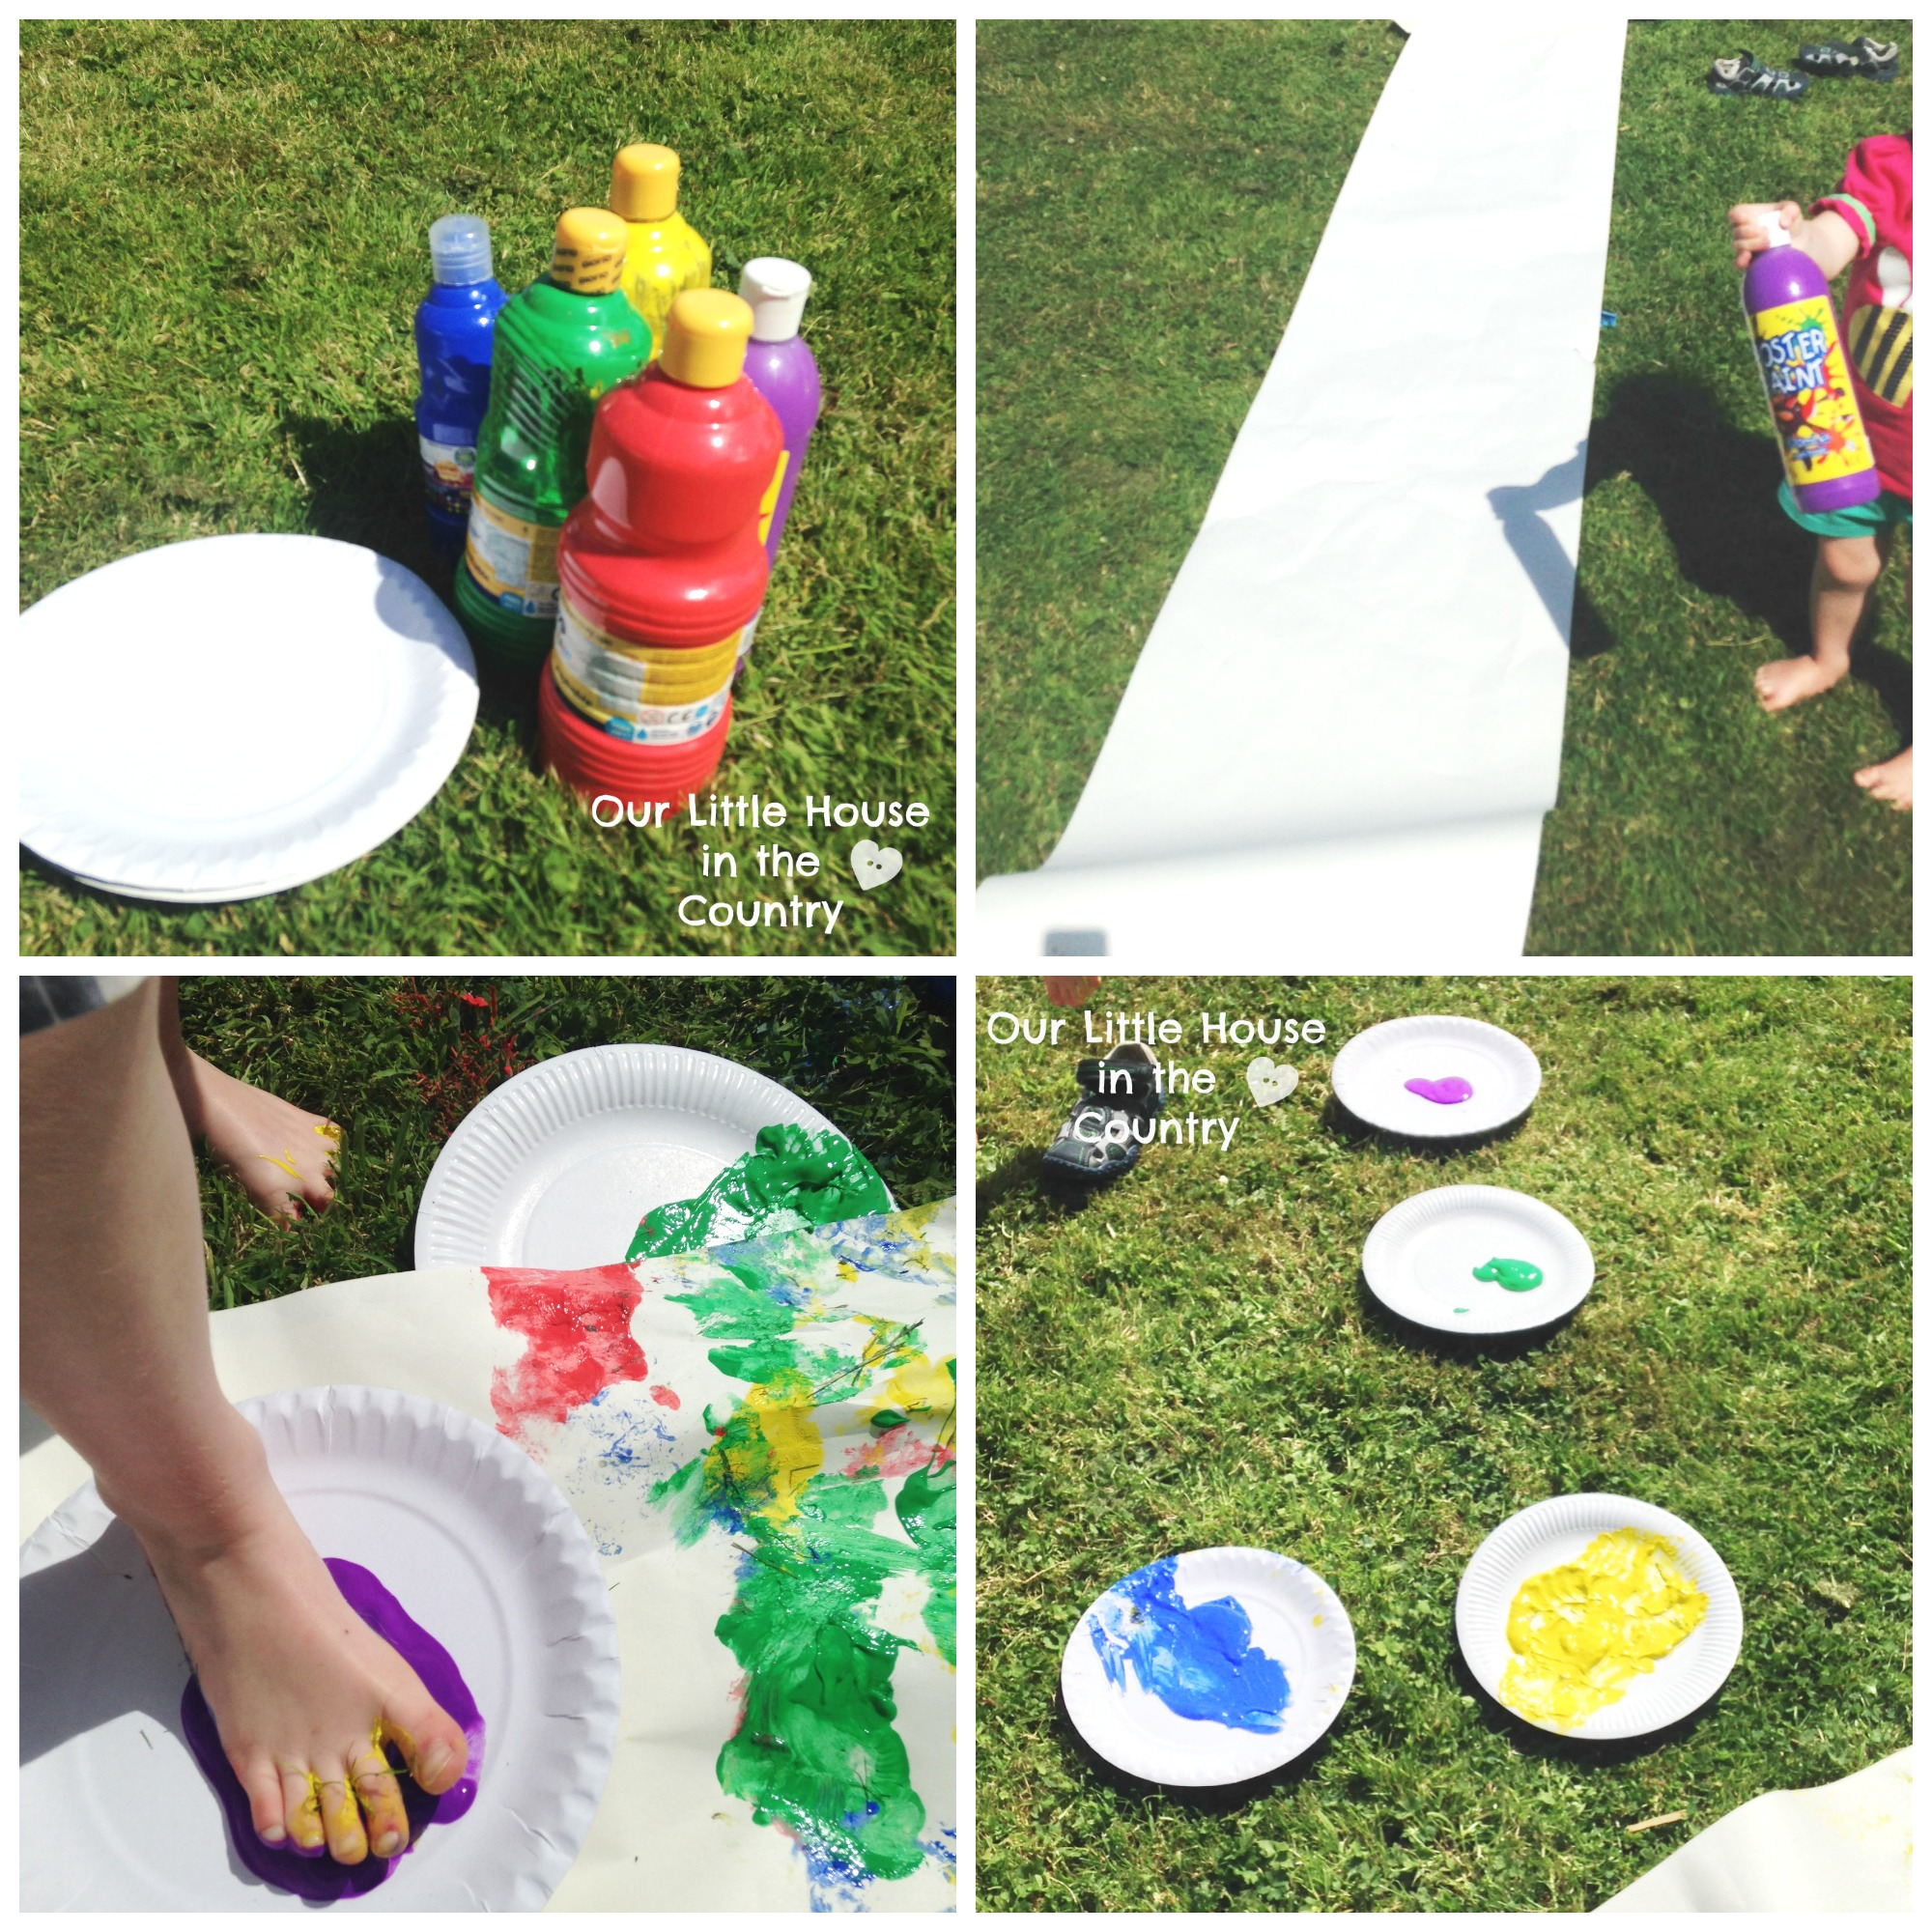 Feet Painting or Printing- Outdoor Messy Summer Fun for Kids! | Our ...